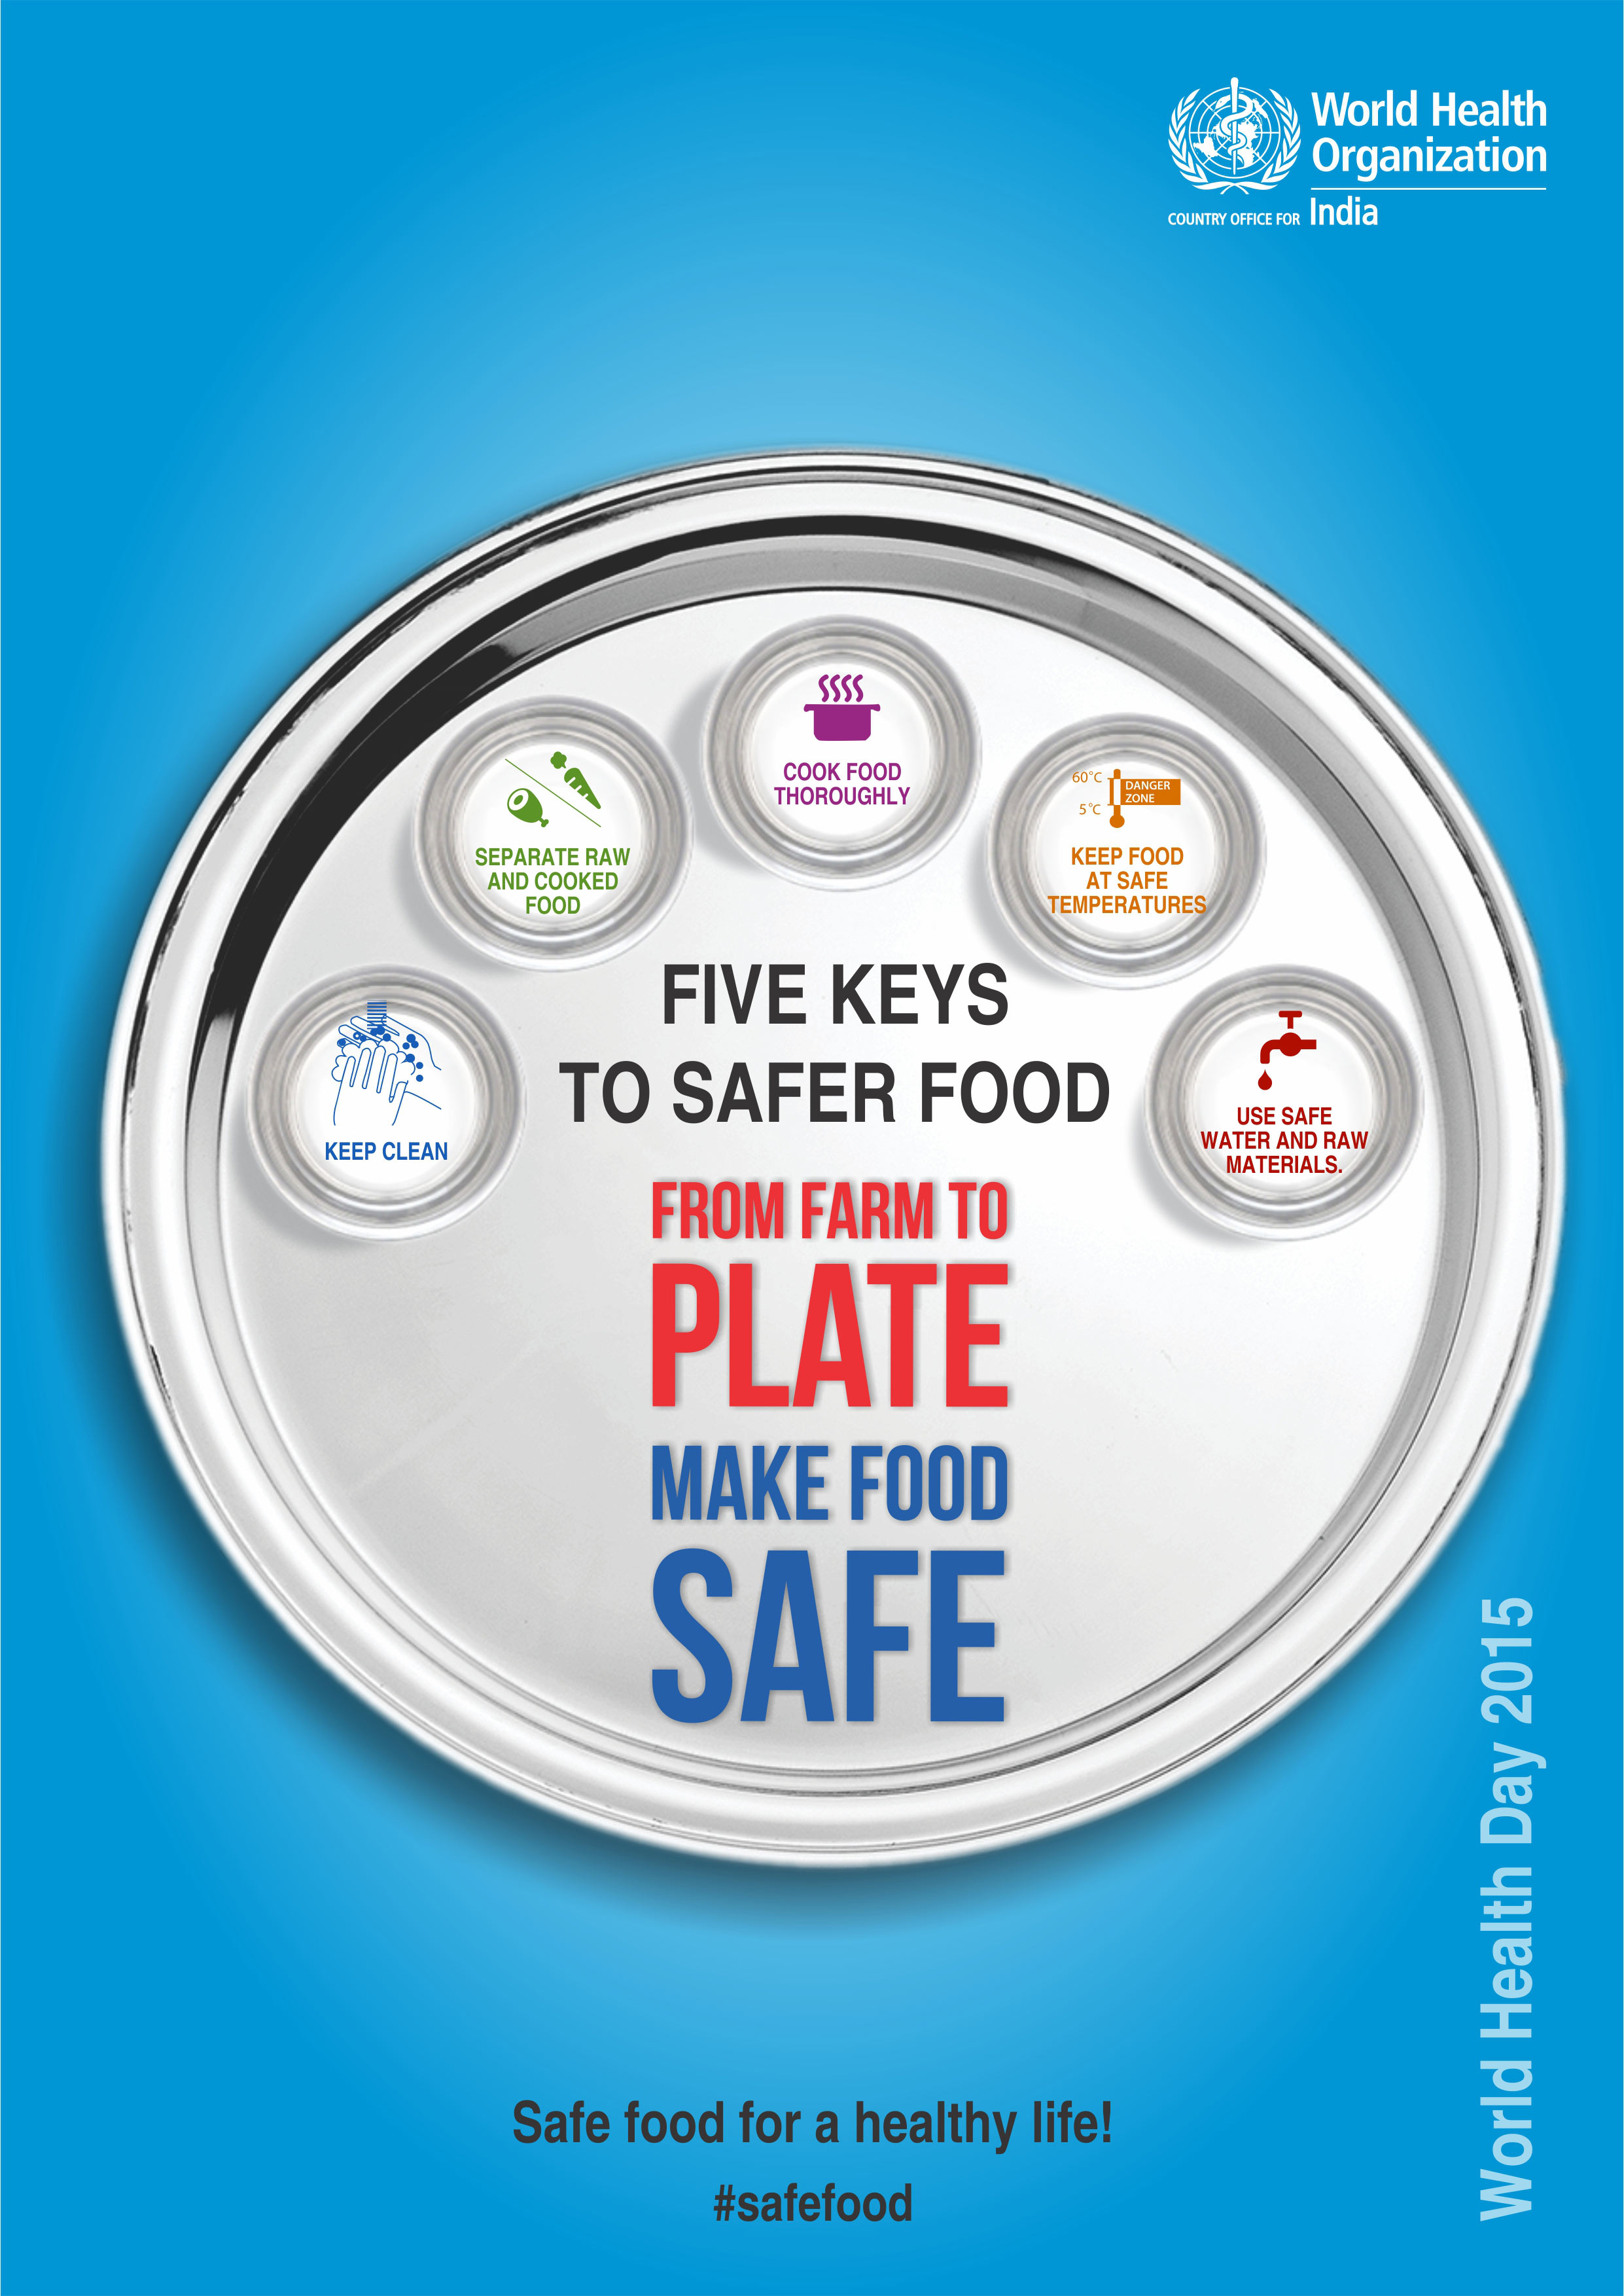 Poster 3: From Farm to Plate - Make Food Safe